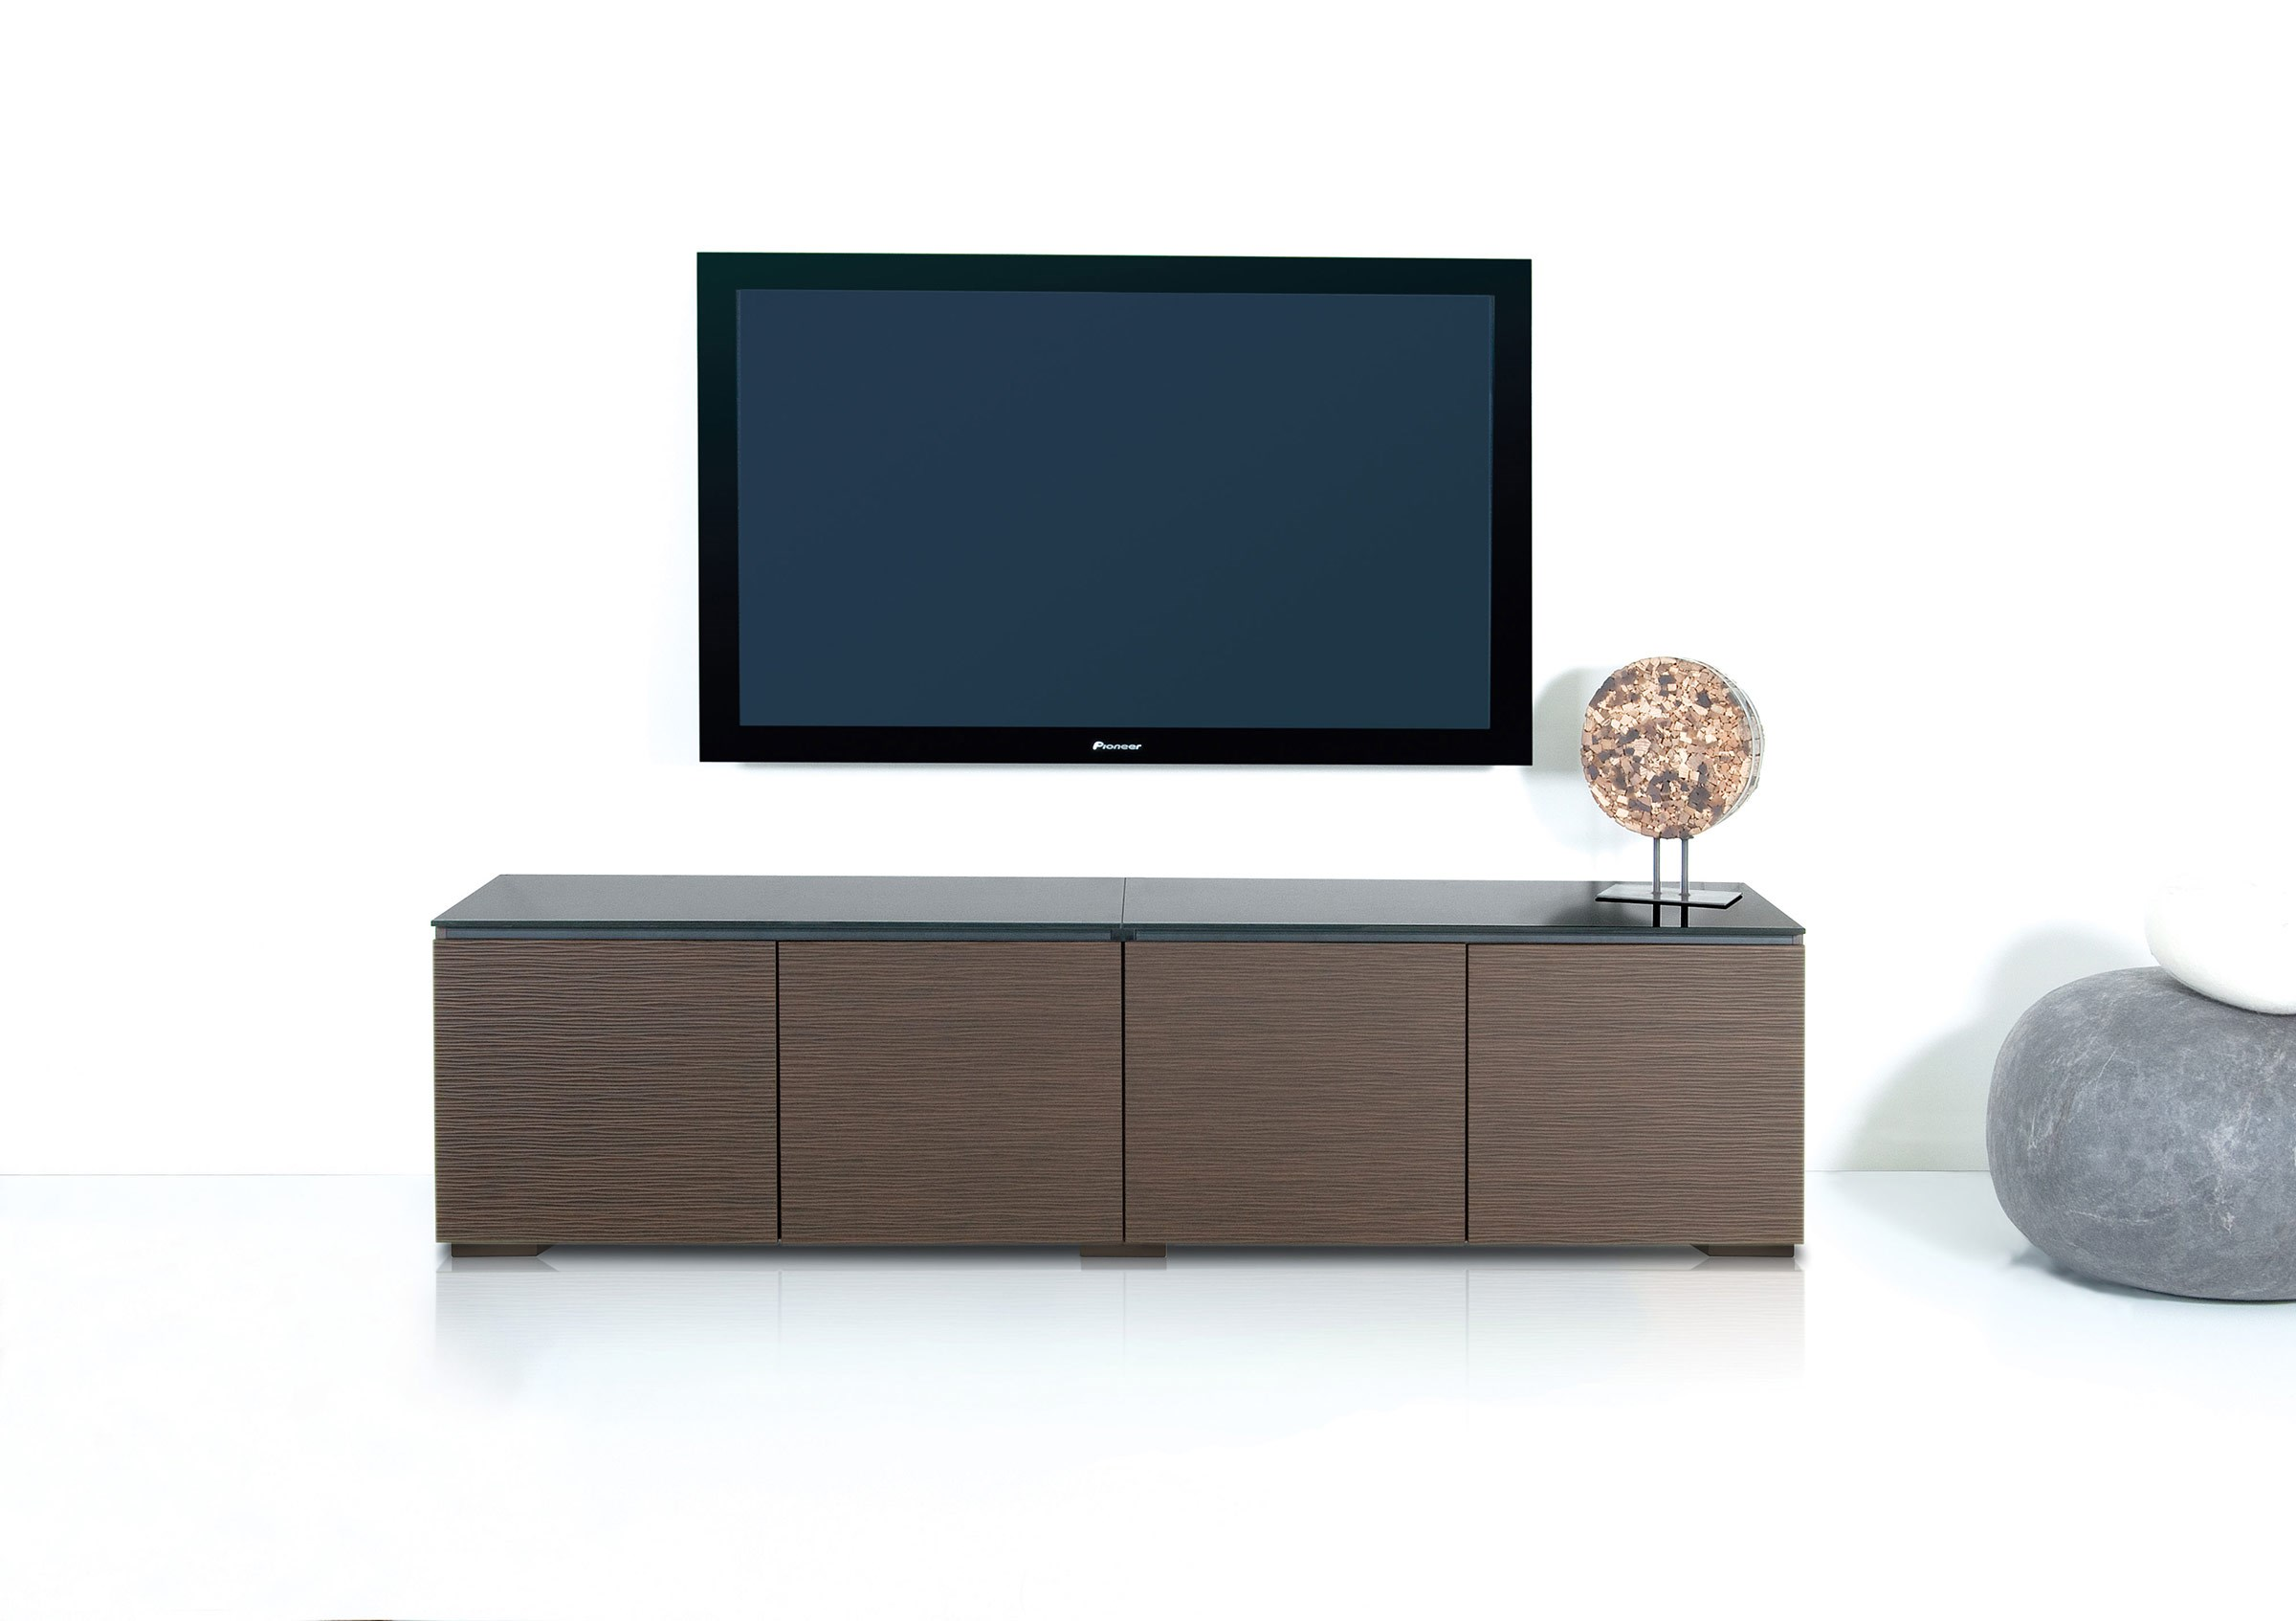 contemporary style furniture. Berlin Contemporary Style Furniture N